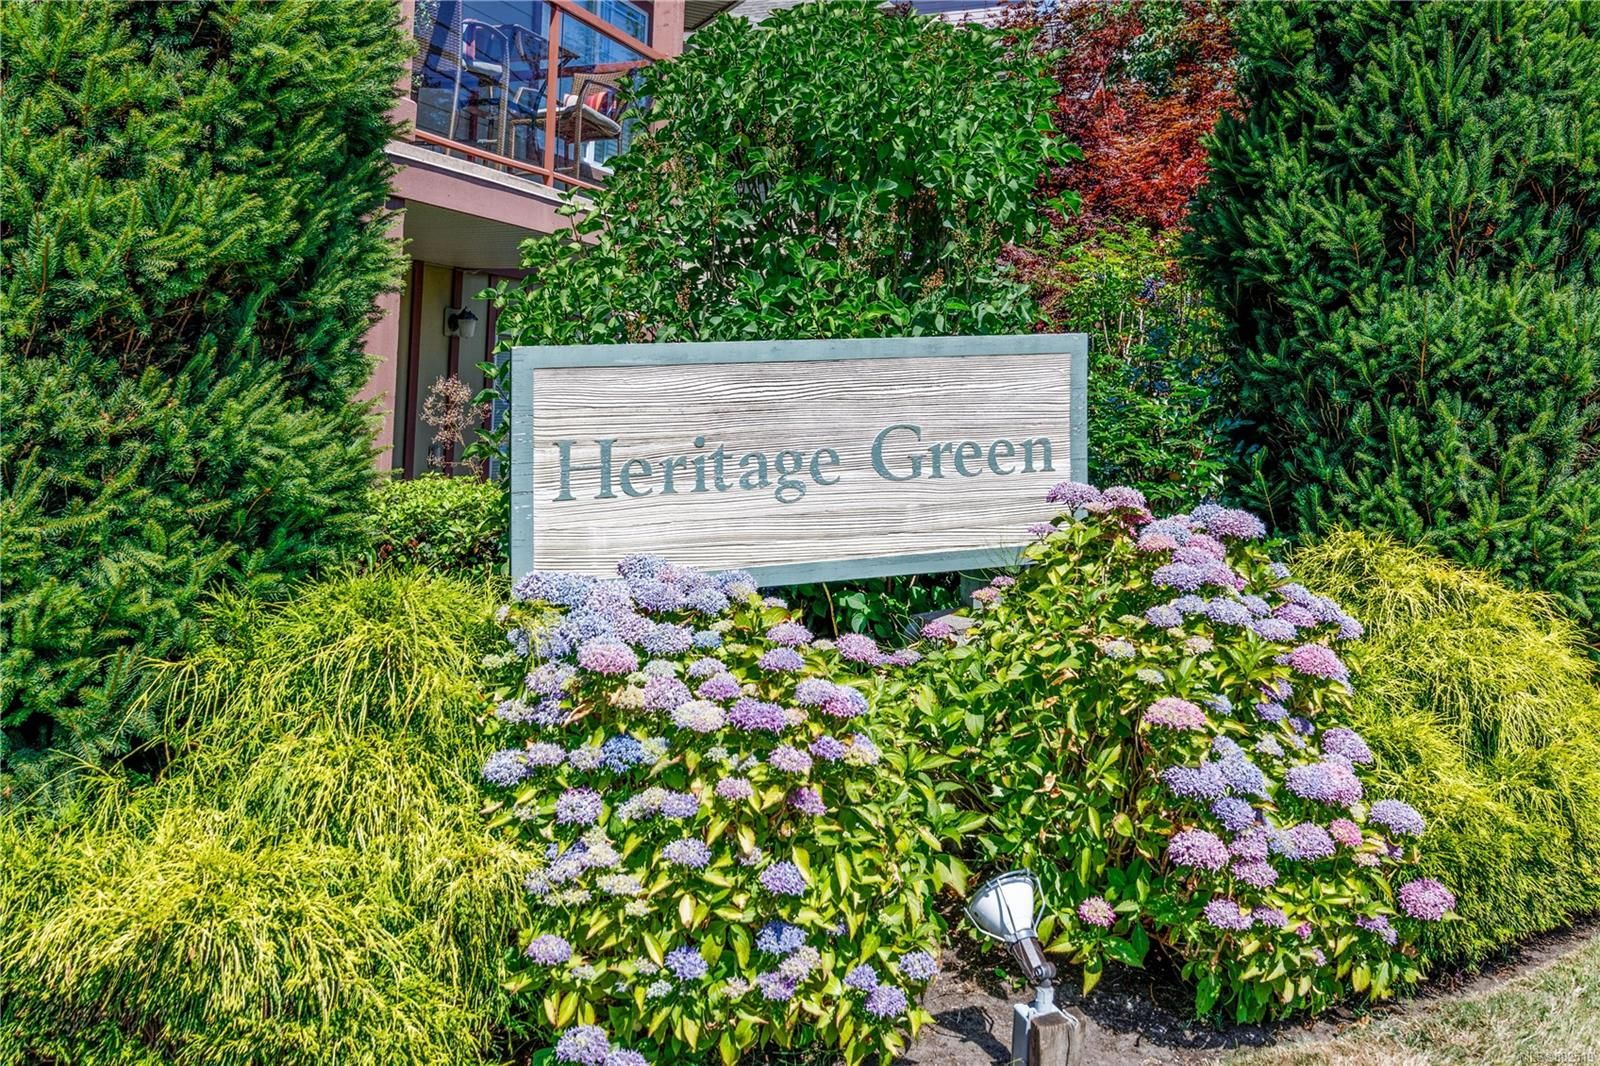 Main Photo: 202 1959 Polo Park Crt in Central Saanich: CS Saanichton Condo for sale : MLS®# 882519